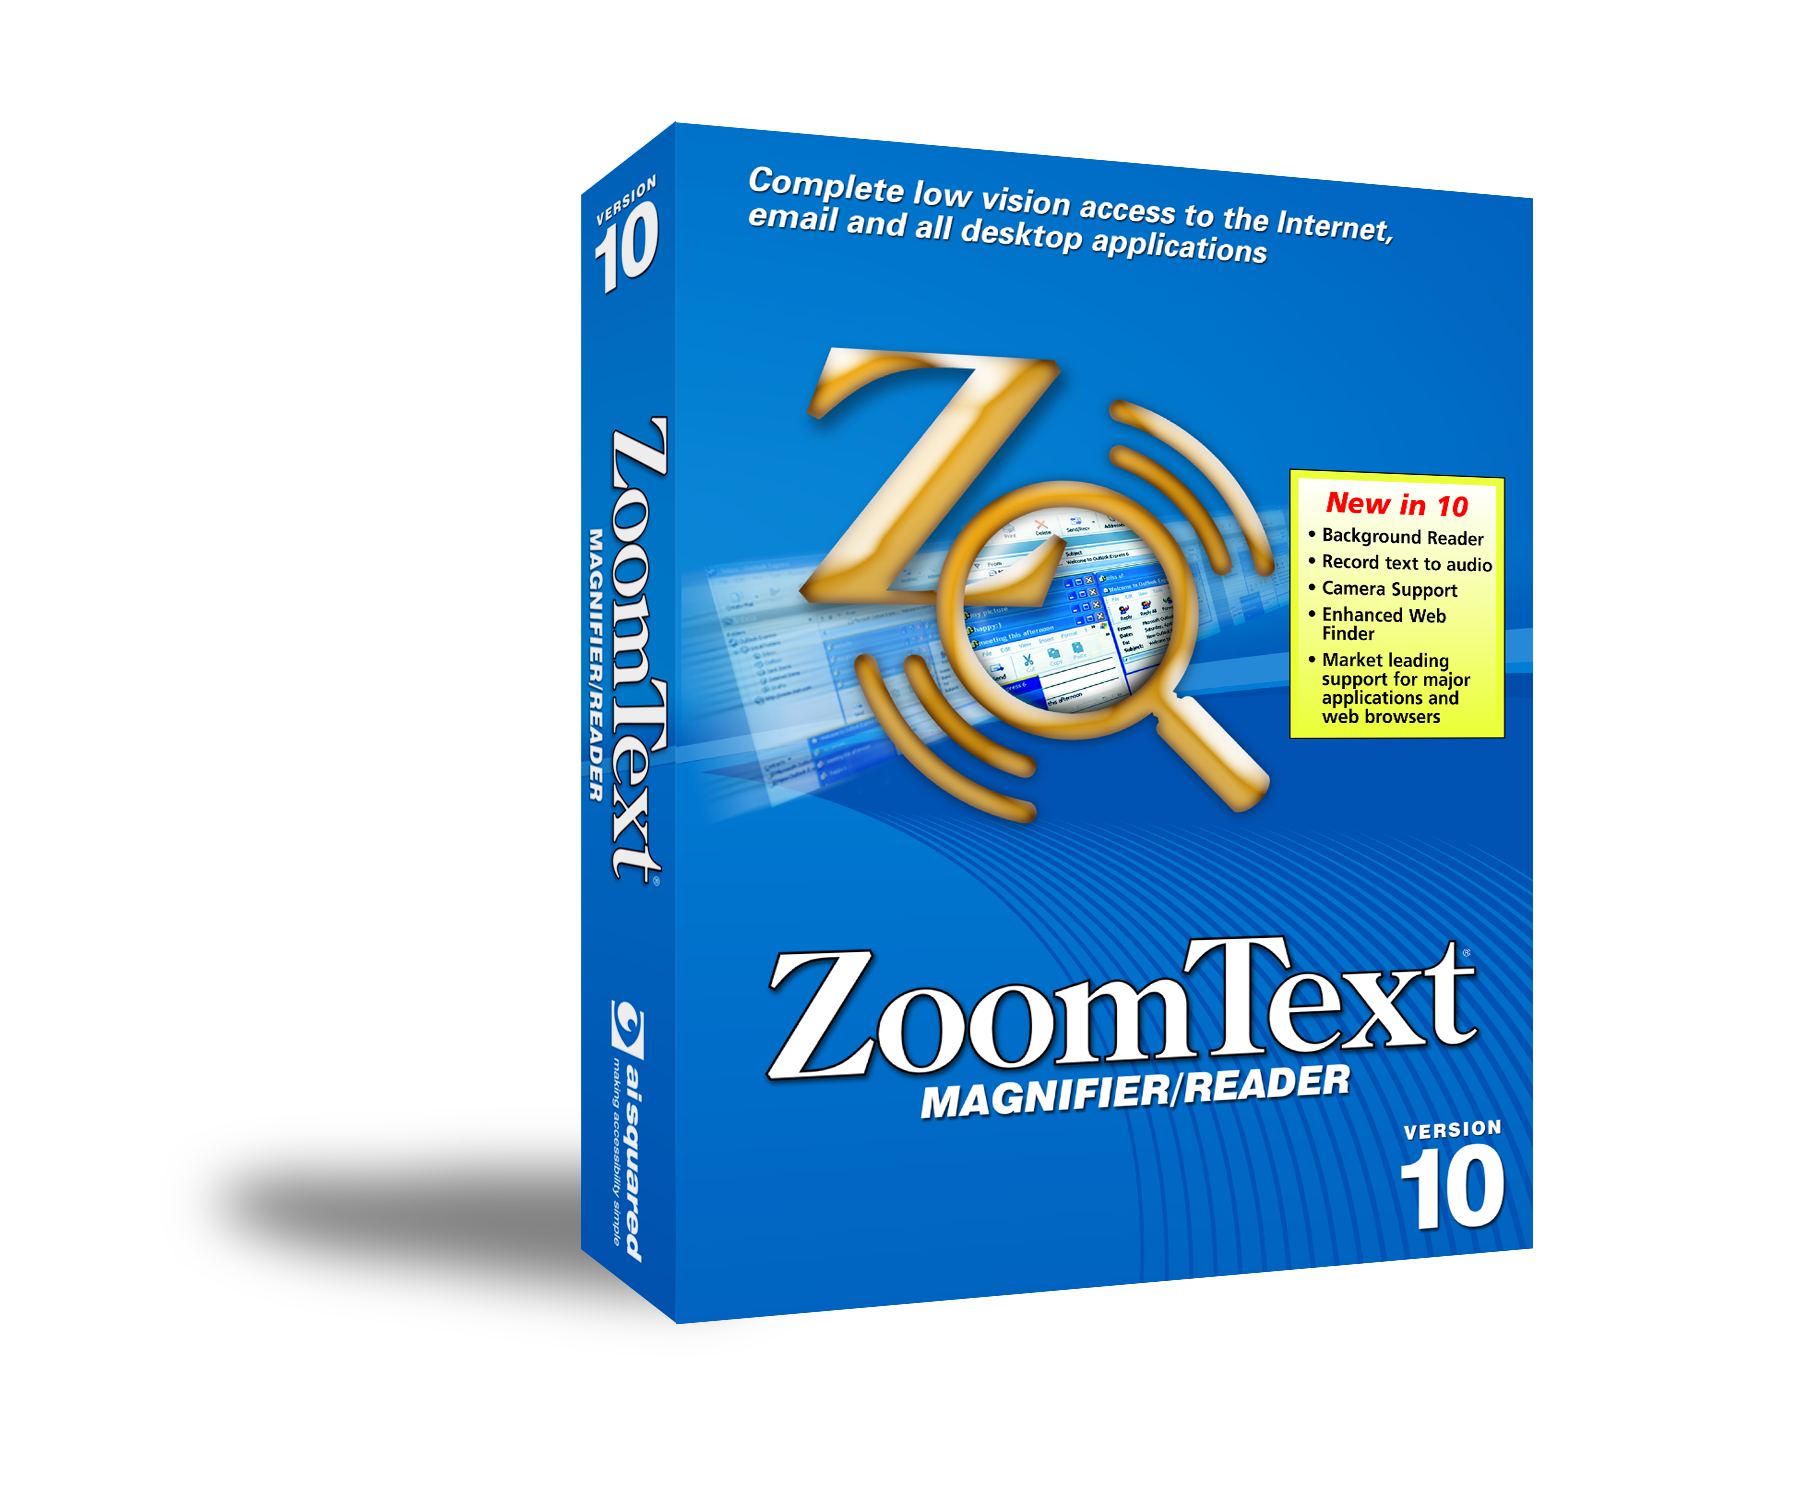 Box shot of ZoomText Magnifier/Reader